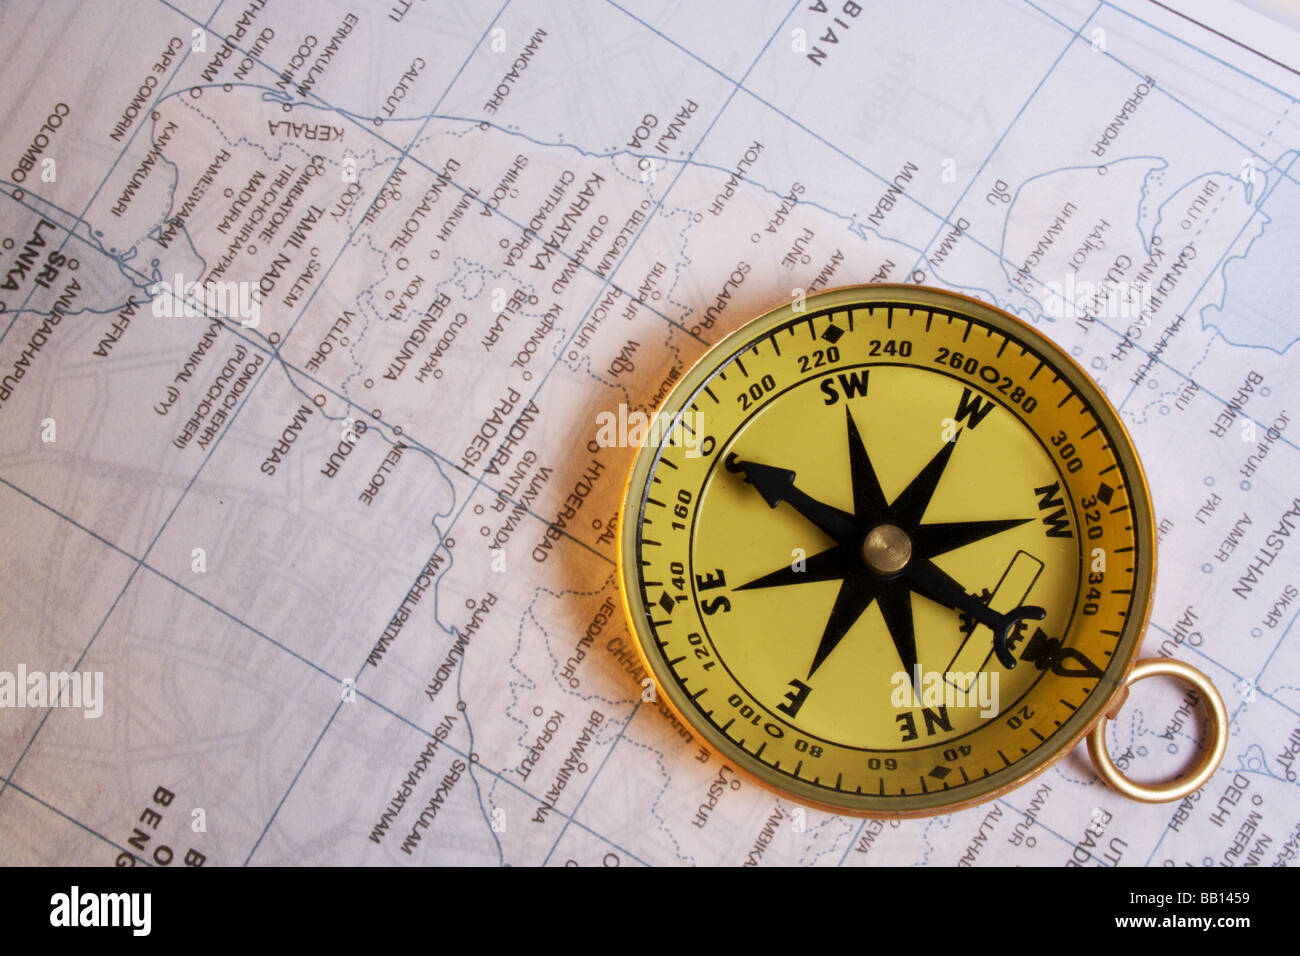 Cirectional compass on map - Stock Image